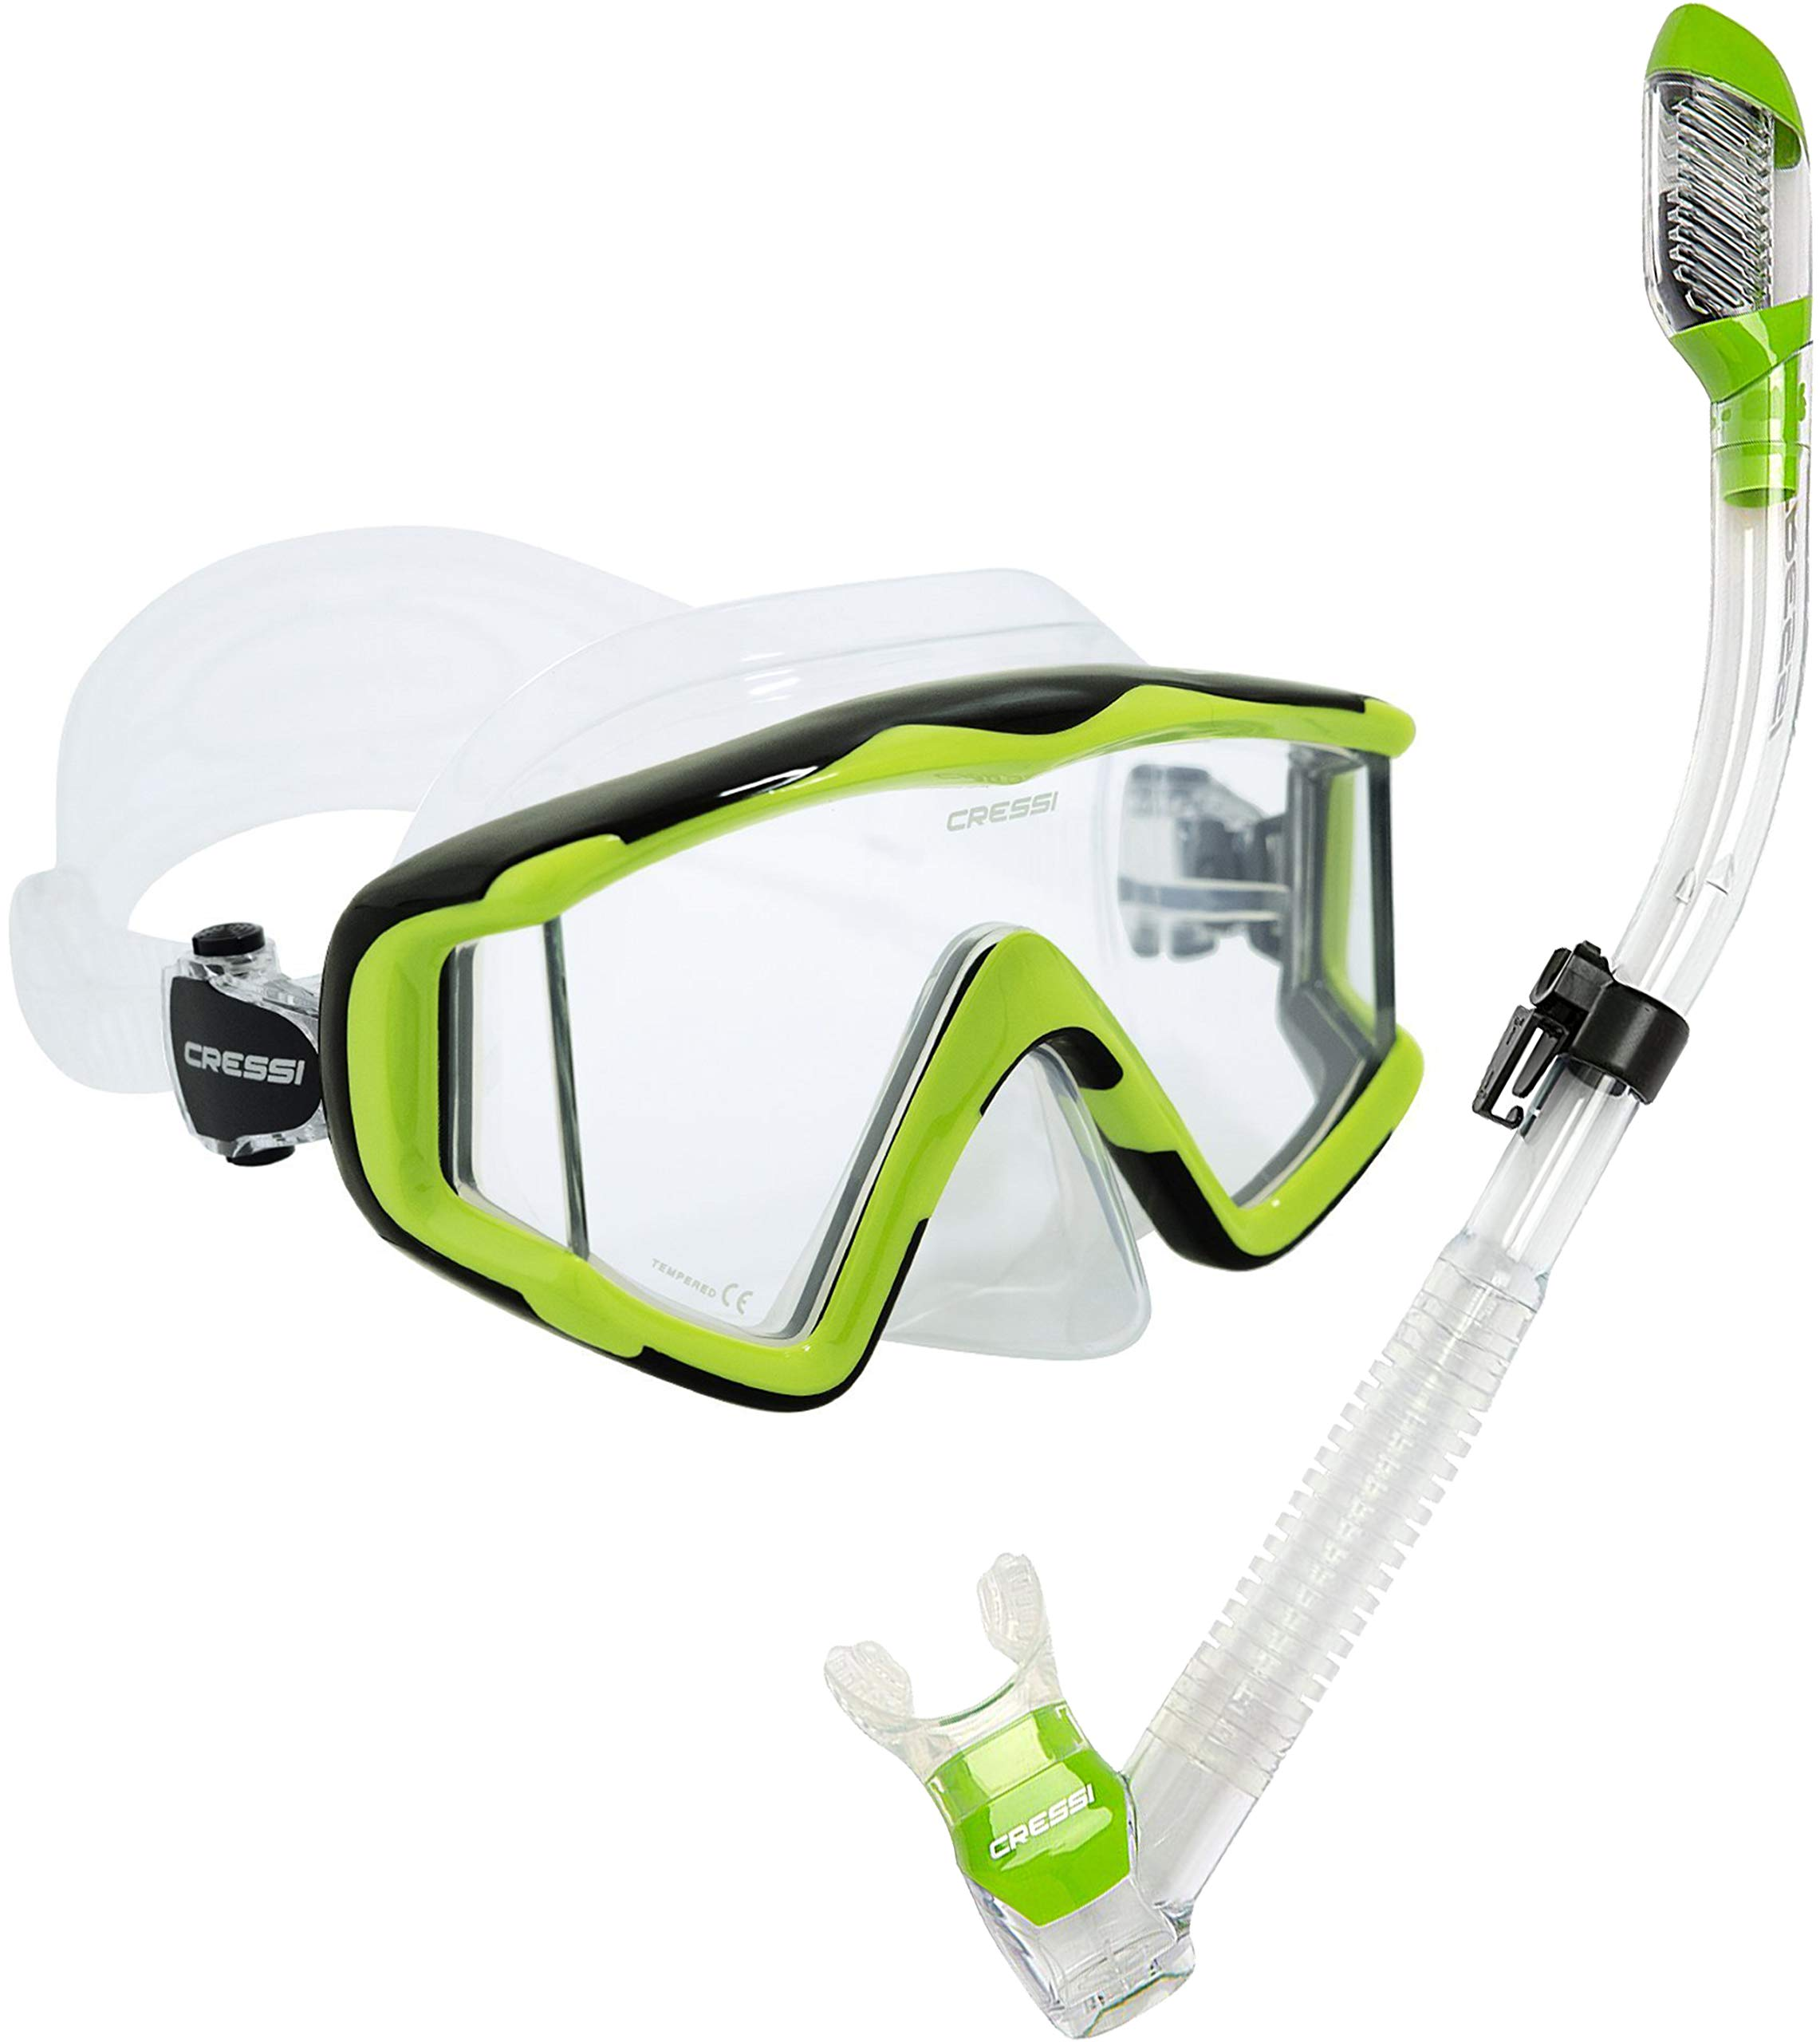 Cressi Panoramic Wide View 3 Panel Mask Dry Snorkel Set, Lime Green/Clear Silicone by Cressi